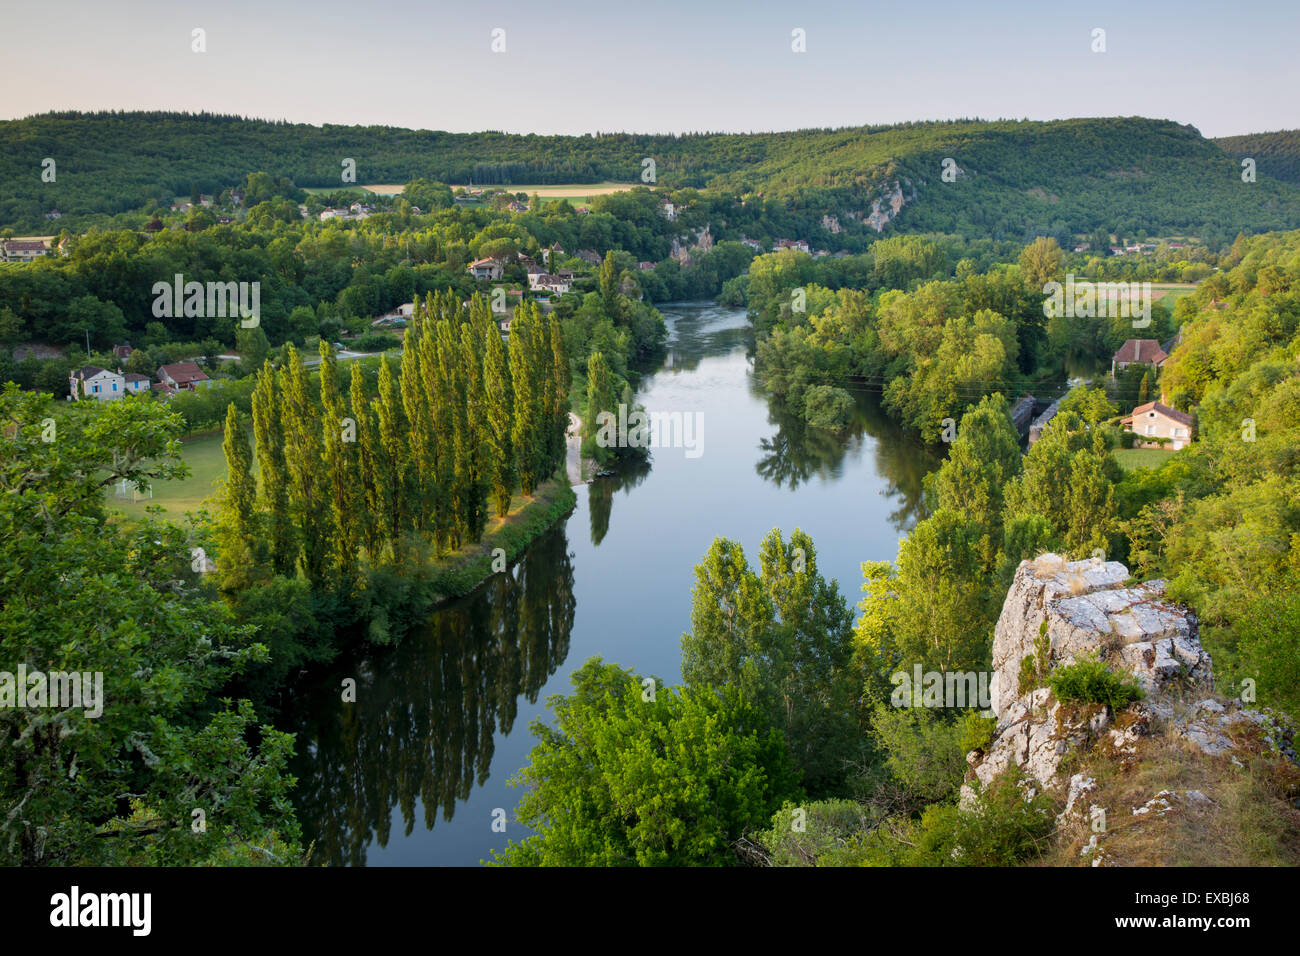 Evening view over River Lot from Saint-Cirq-Lapopie, Vallee du Lot, Midi-Pyrenees, France Stock Photo